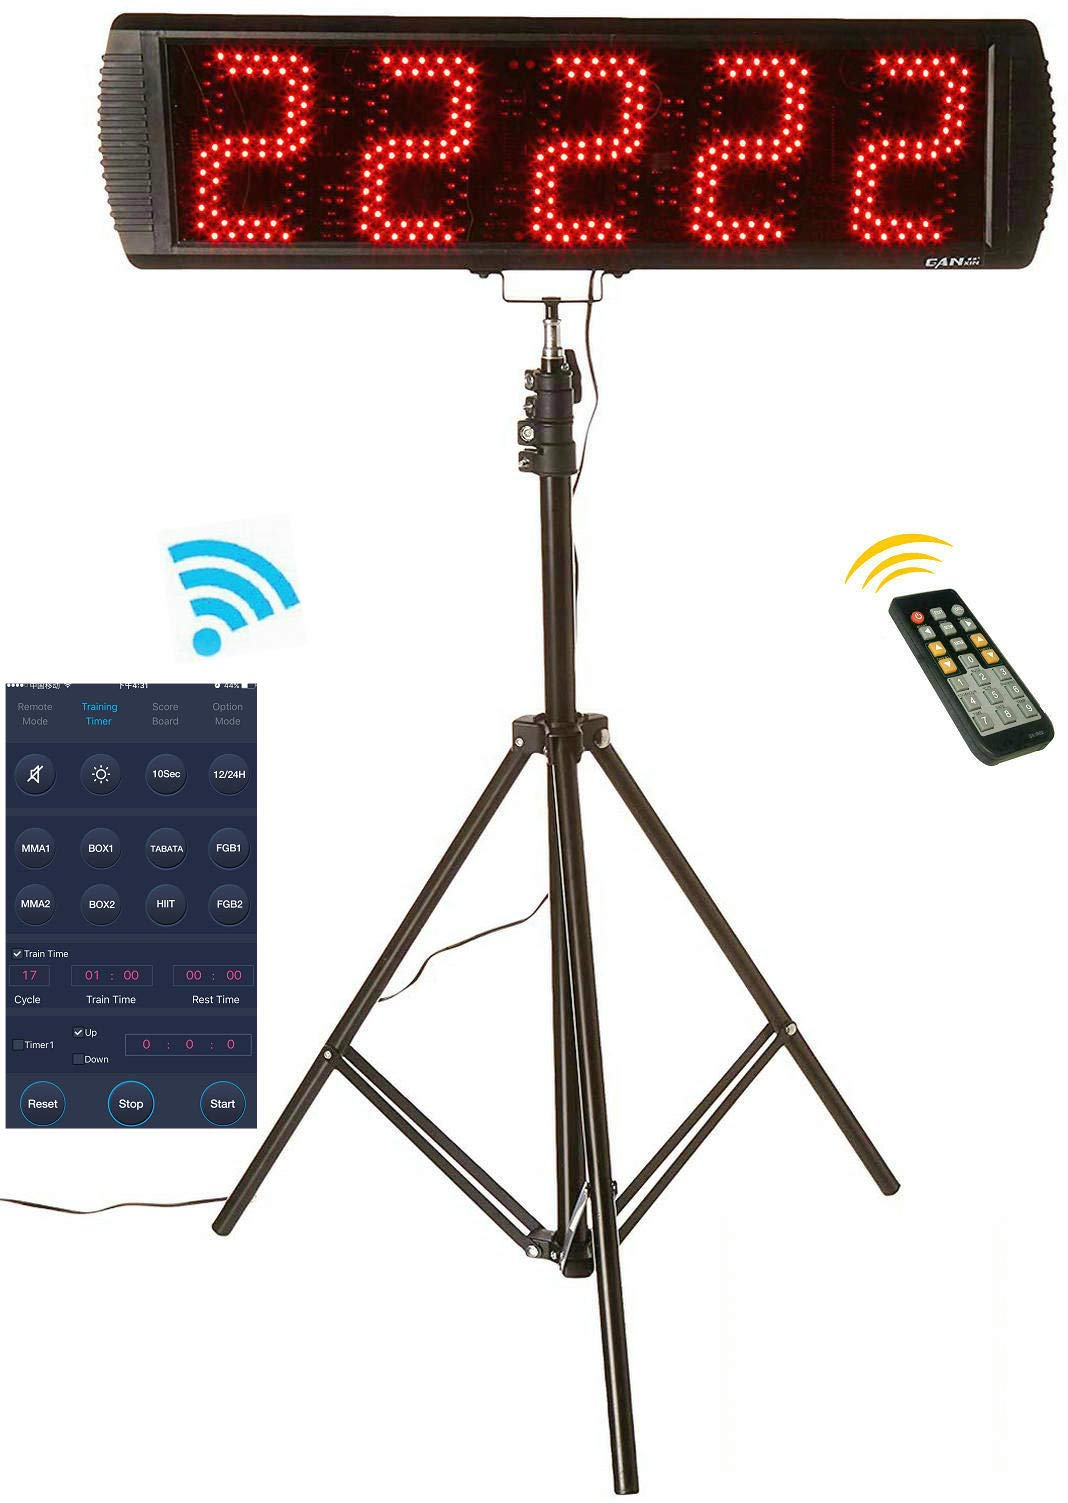 GAN XIN App-Control 5'' High 5 Digits LED Race Clock with Tripod for Running Events, Countdown/up Digital Timer, by Remote Control by GAN XIN